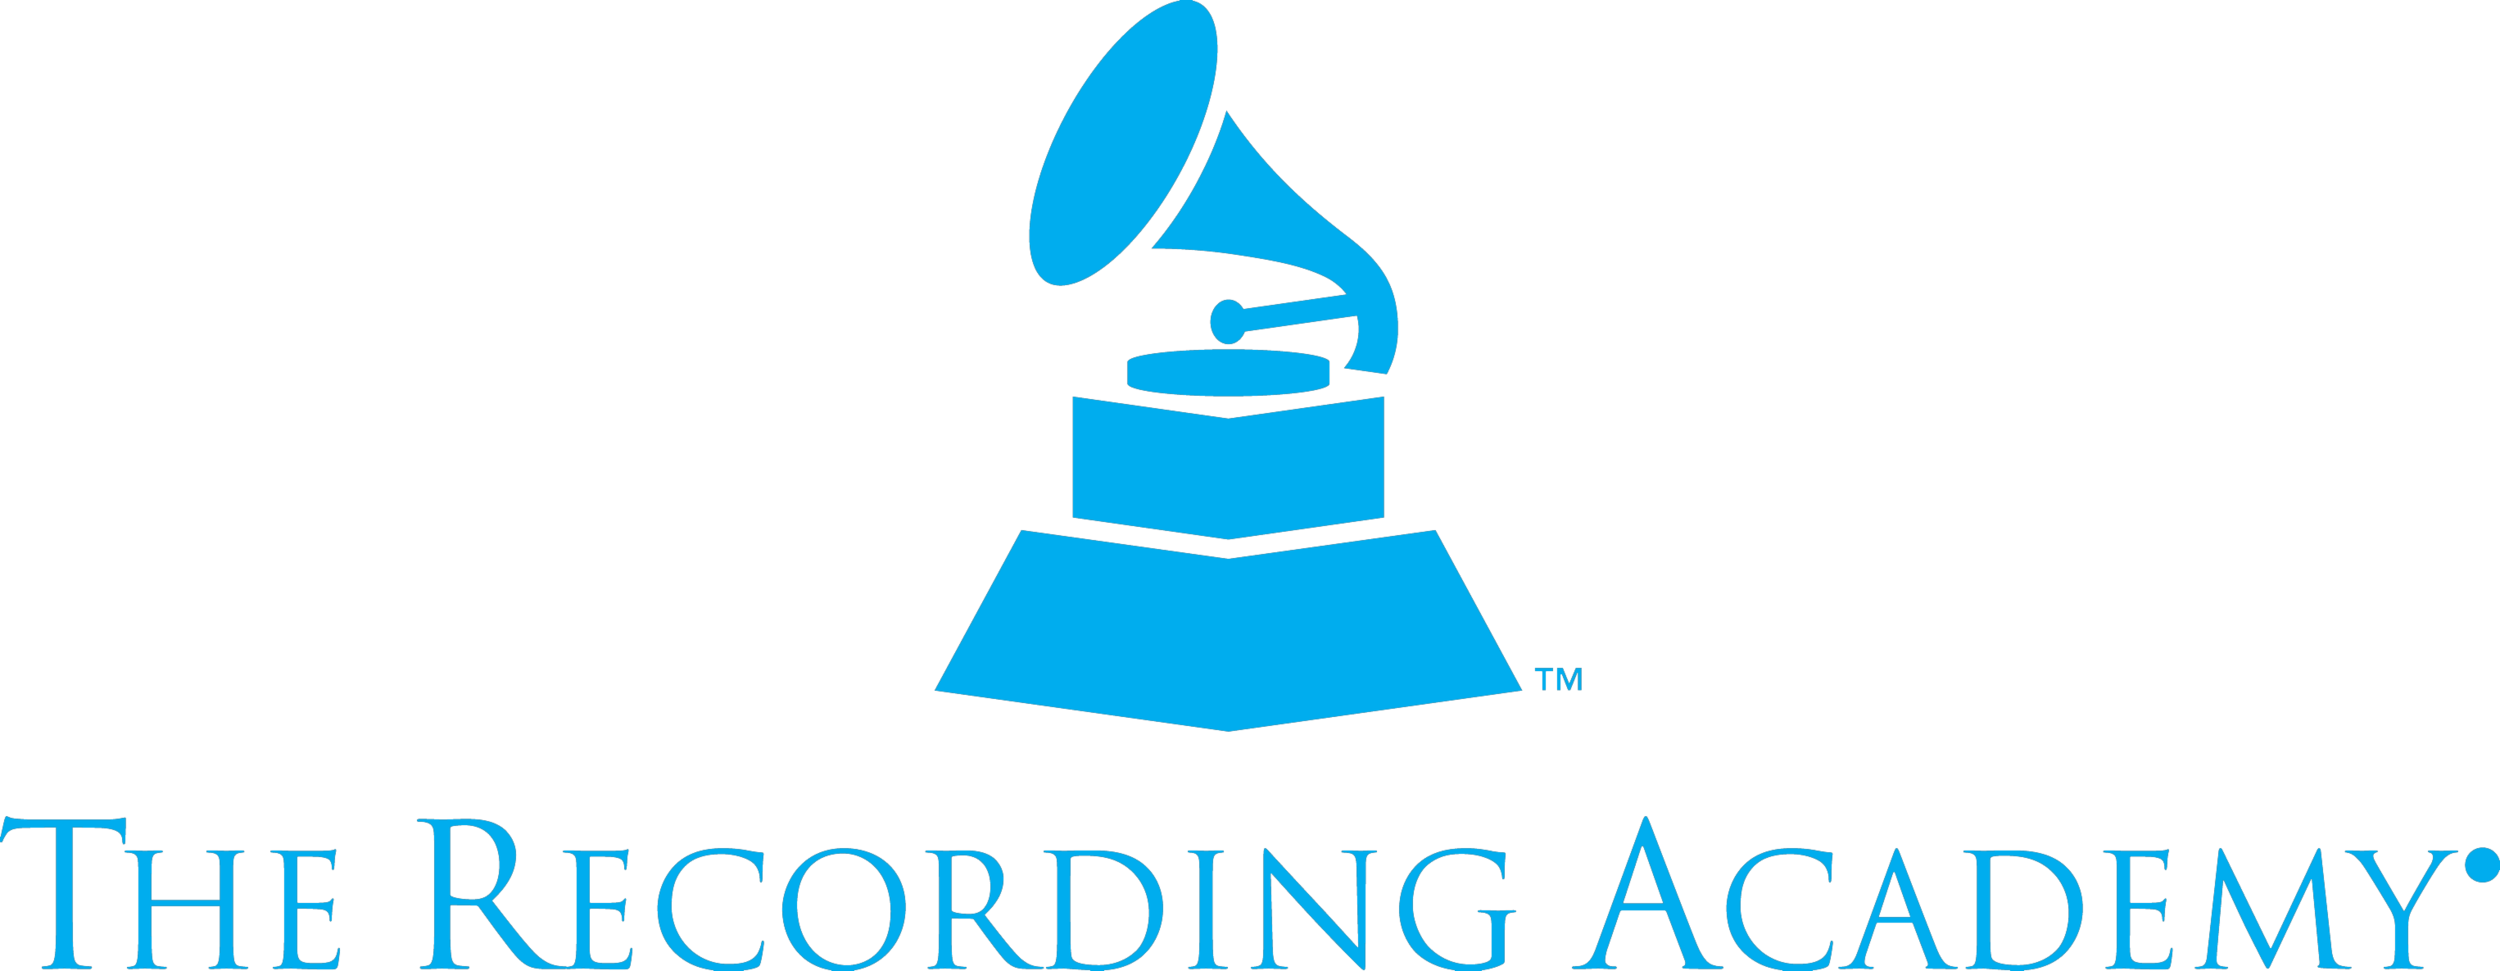 recording academy in blue.png